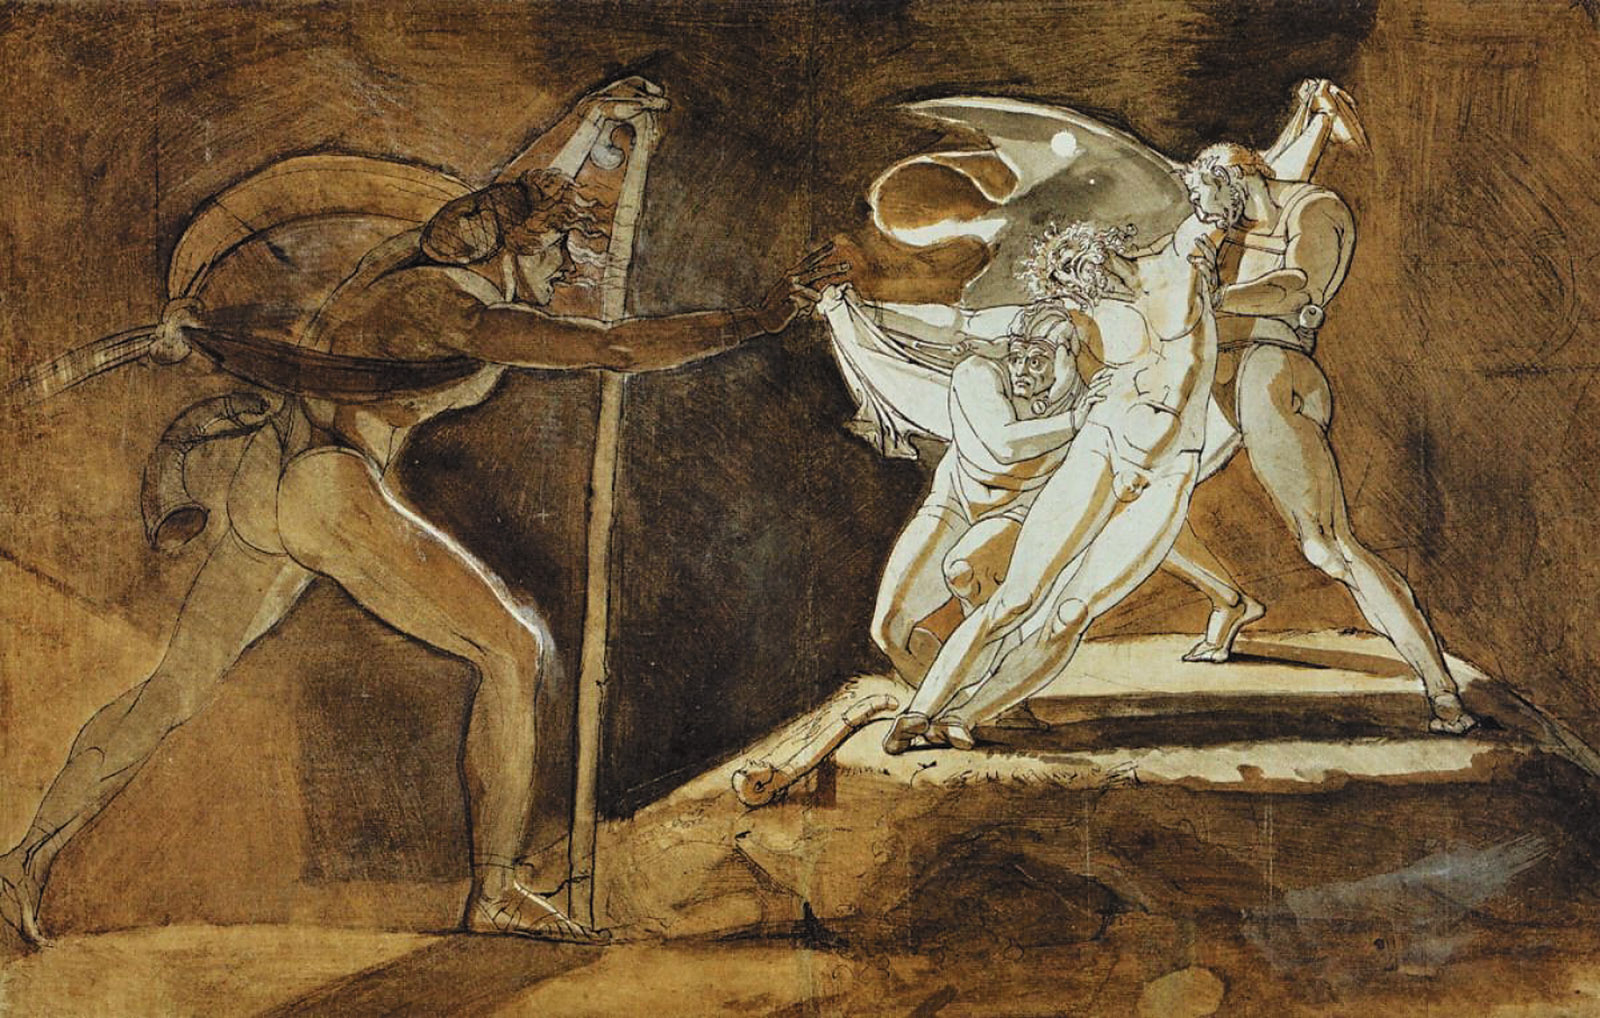 'Edgar, Feigning Madness, Approaches Lear'; drawing by Henry Fuseli, 1772